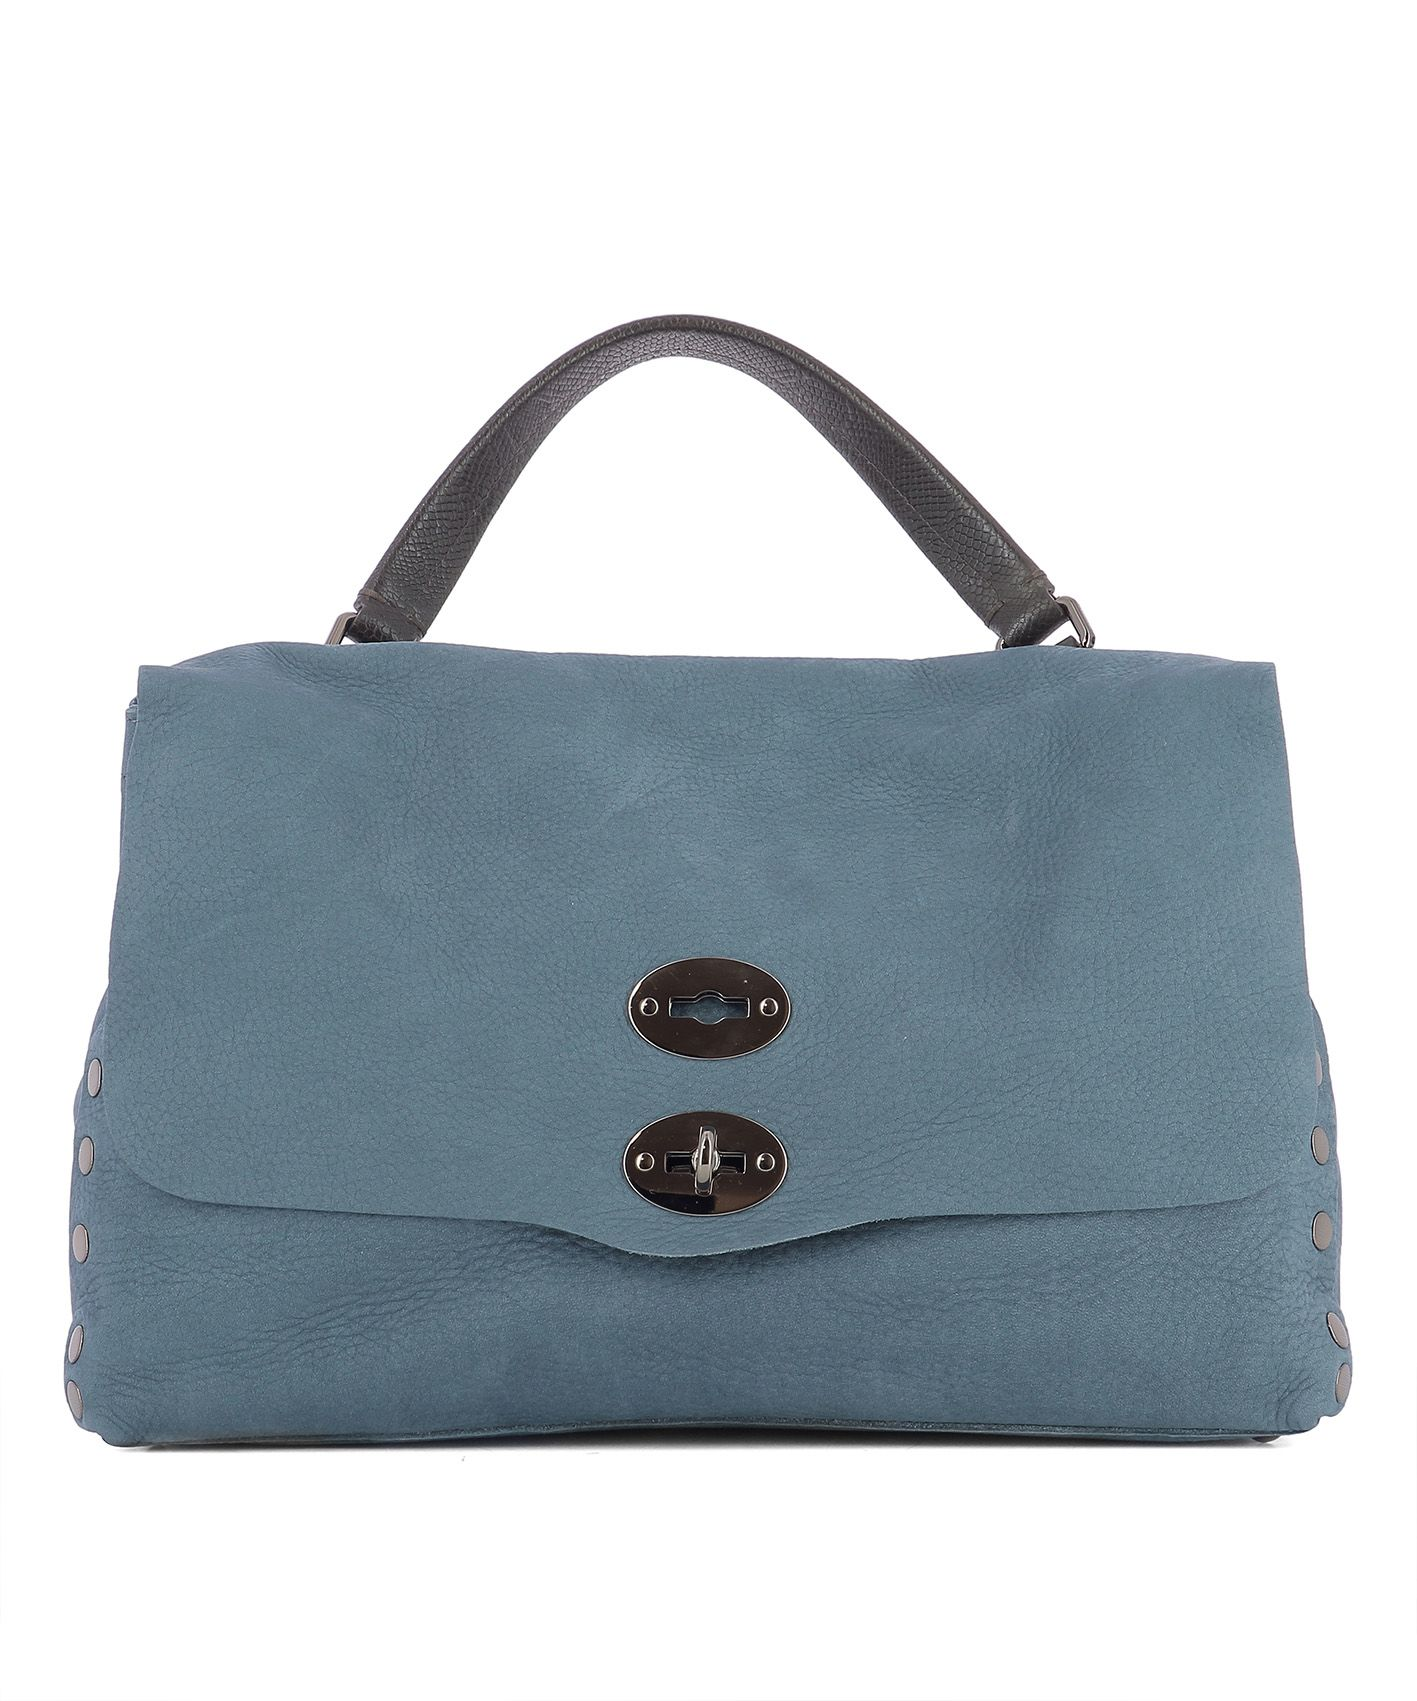 Light Blue Leather Handle Bag